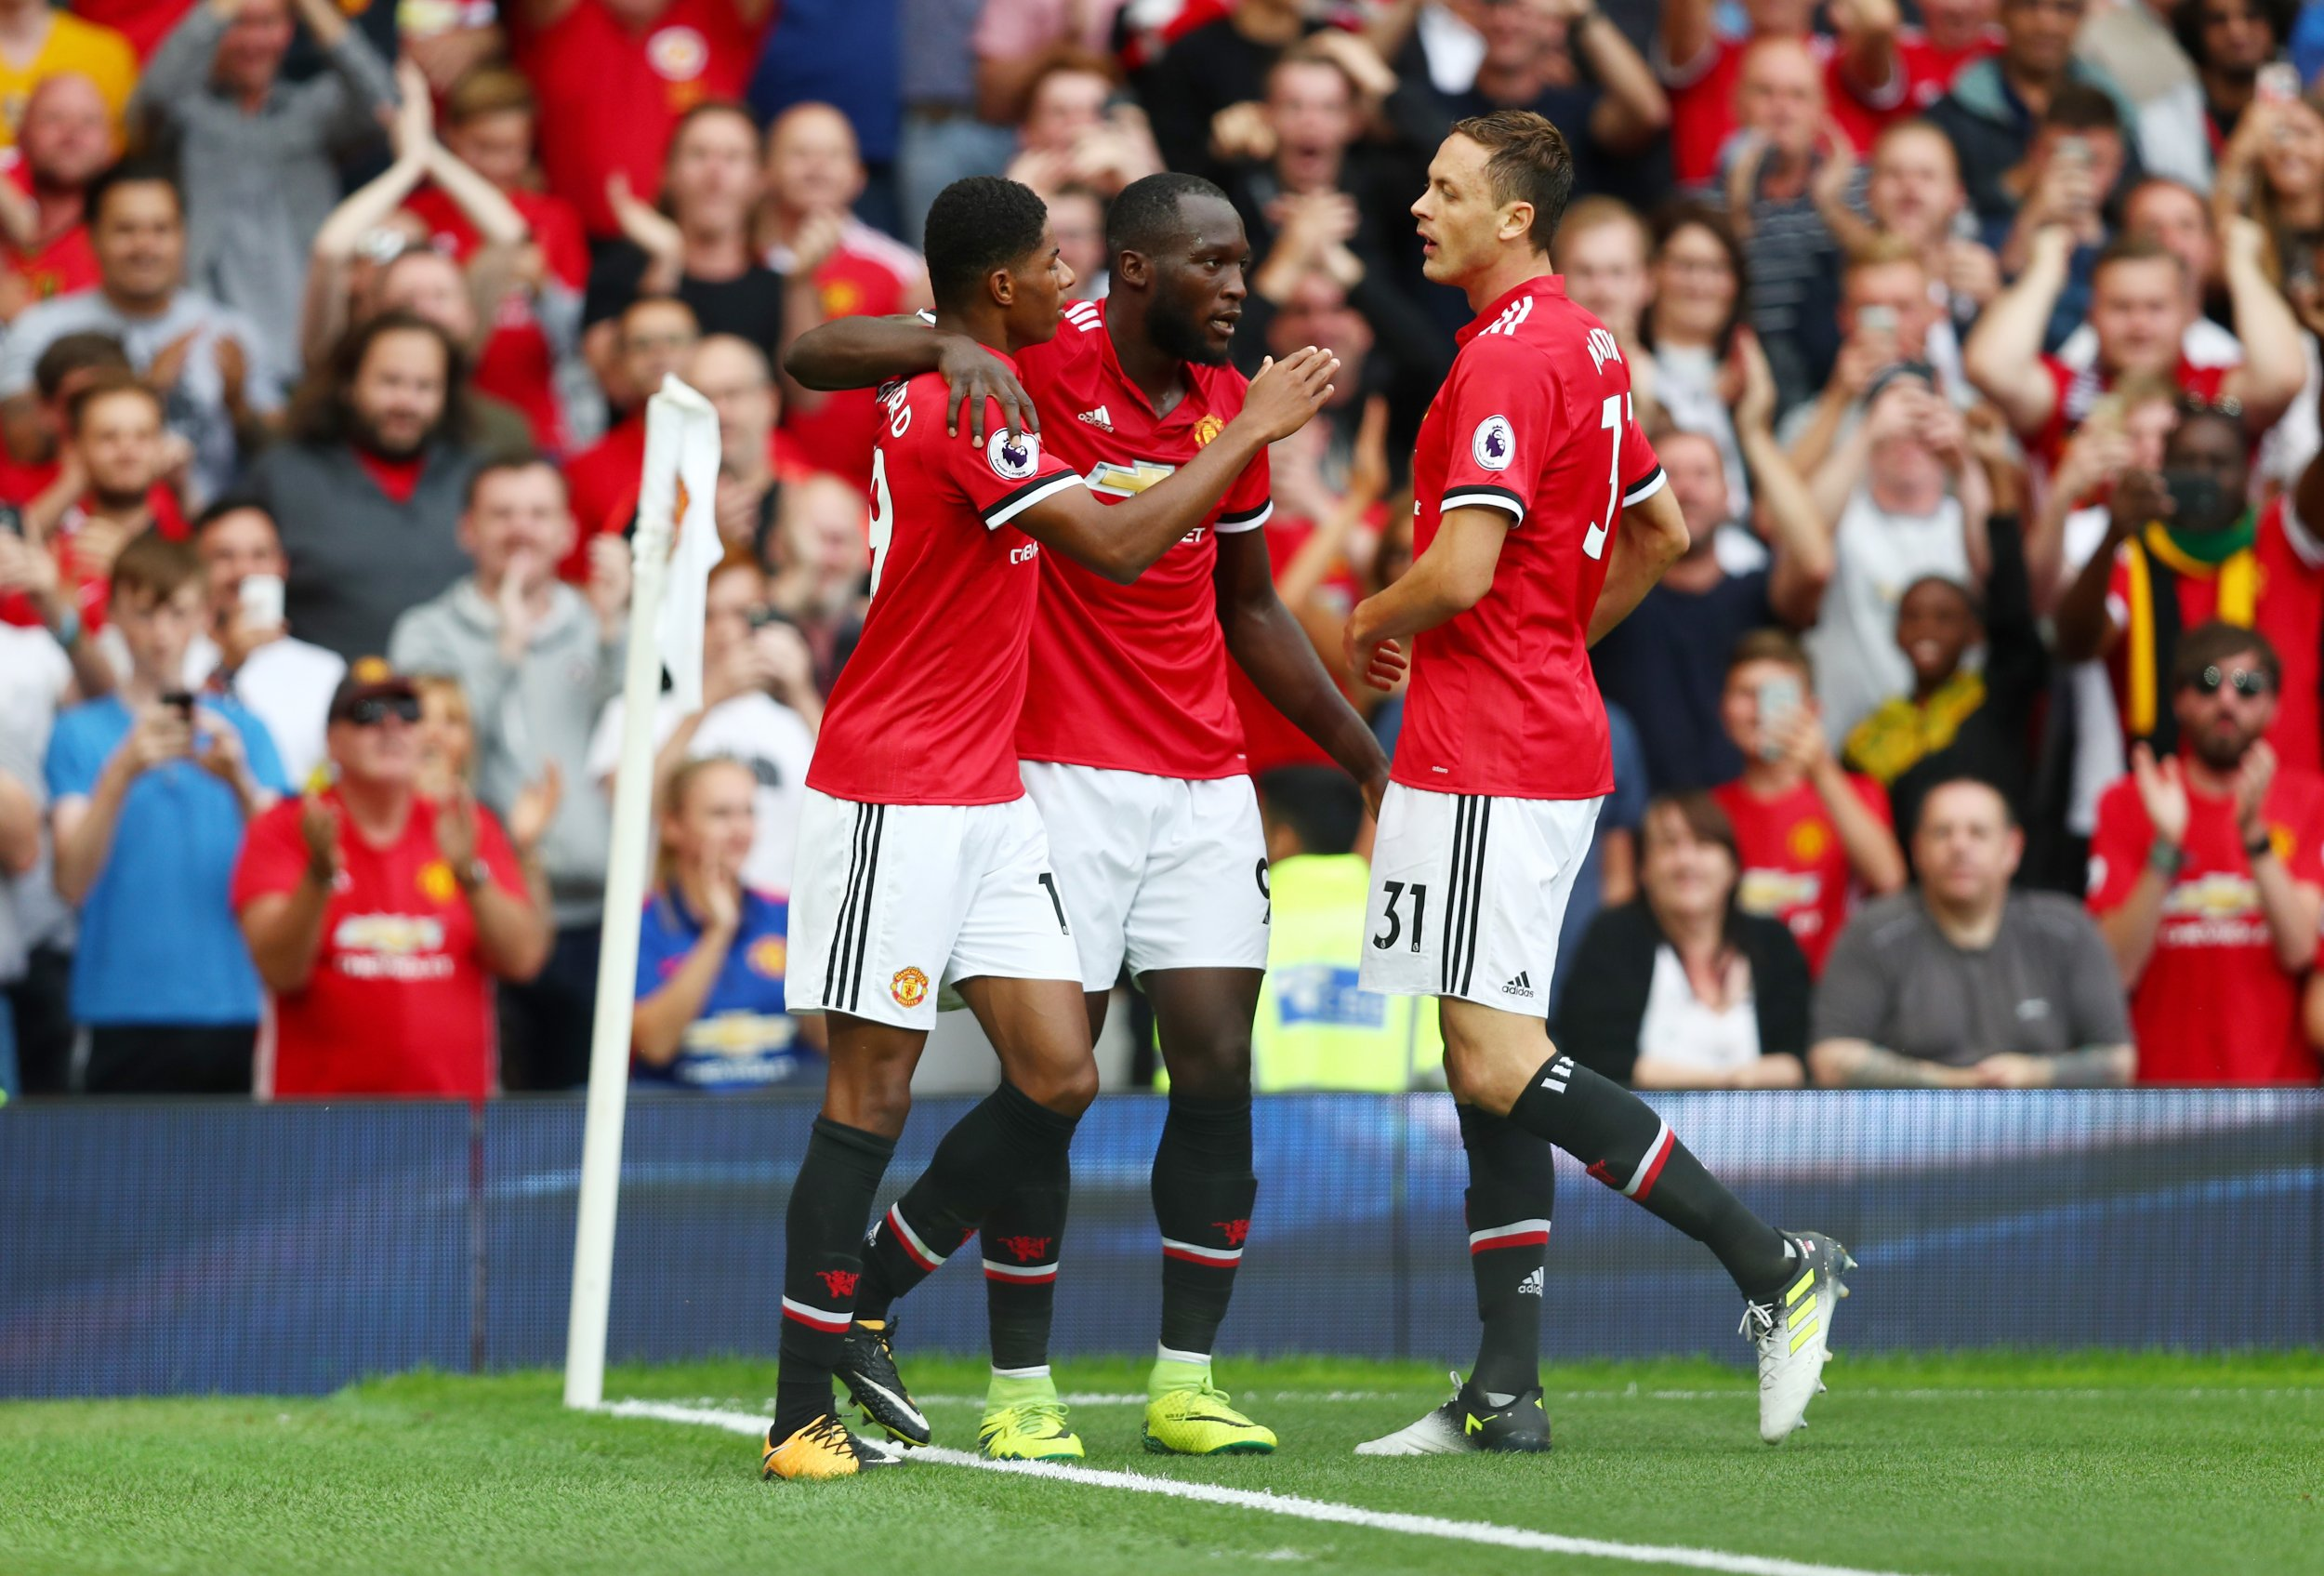 Romelu Lukaku, center, and Nemanja Matic, right, of Manchester United.